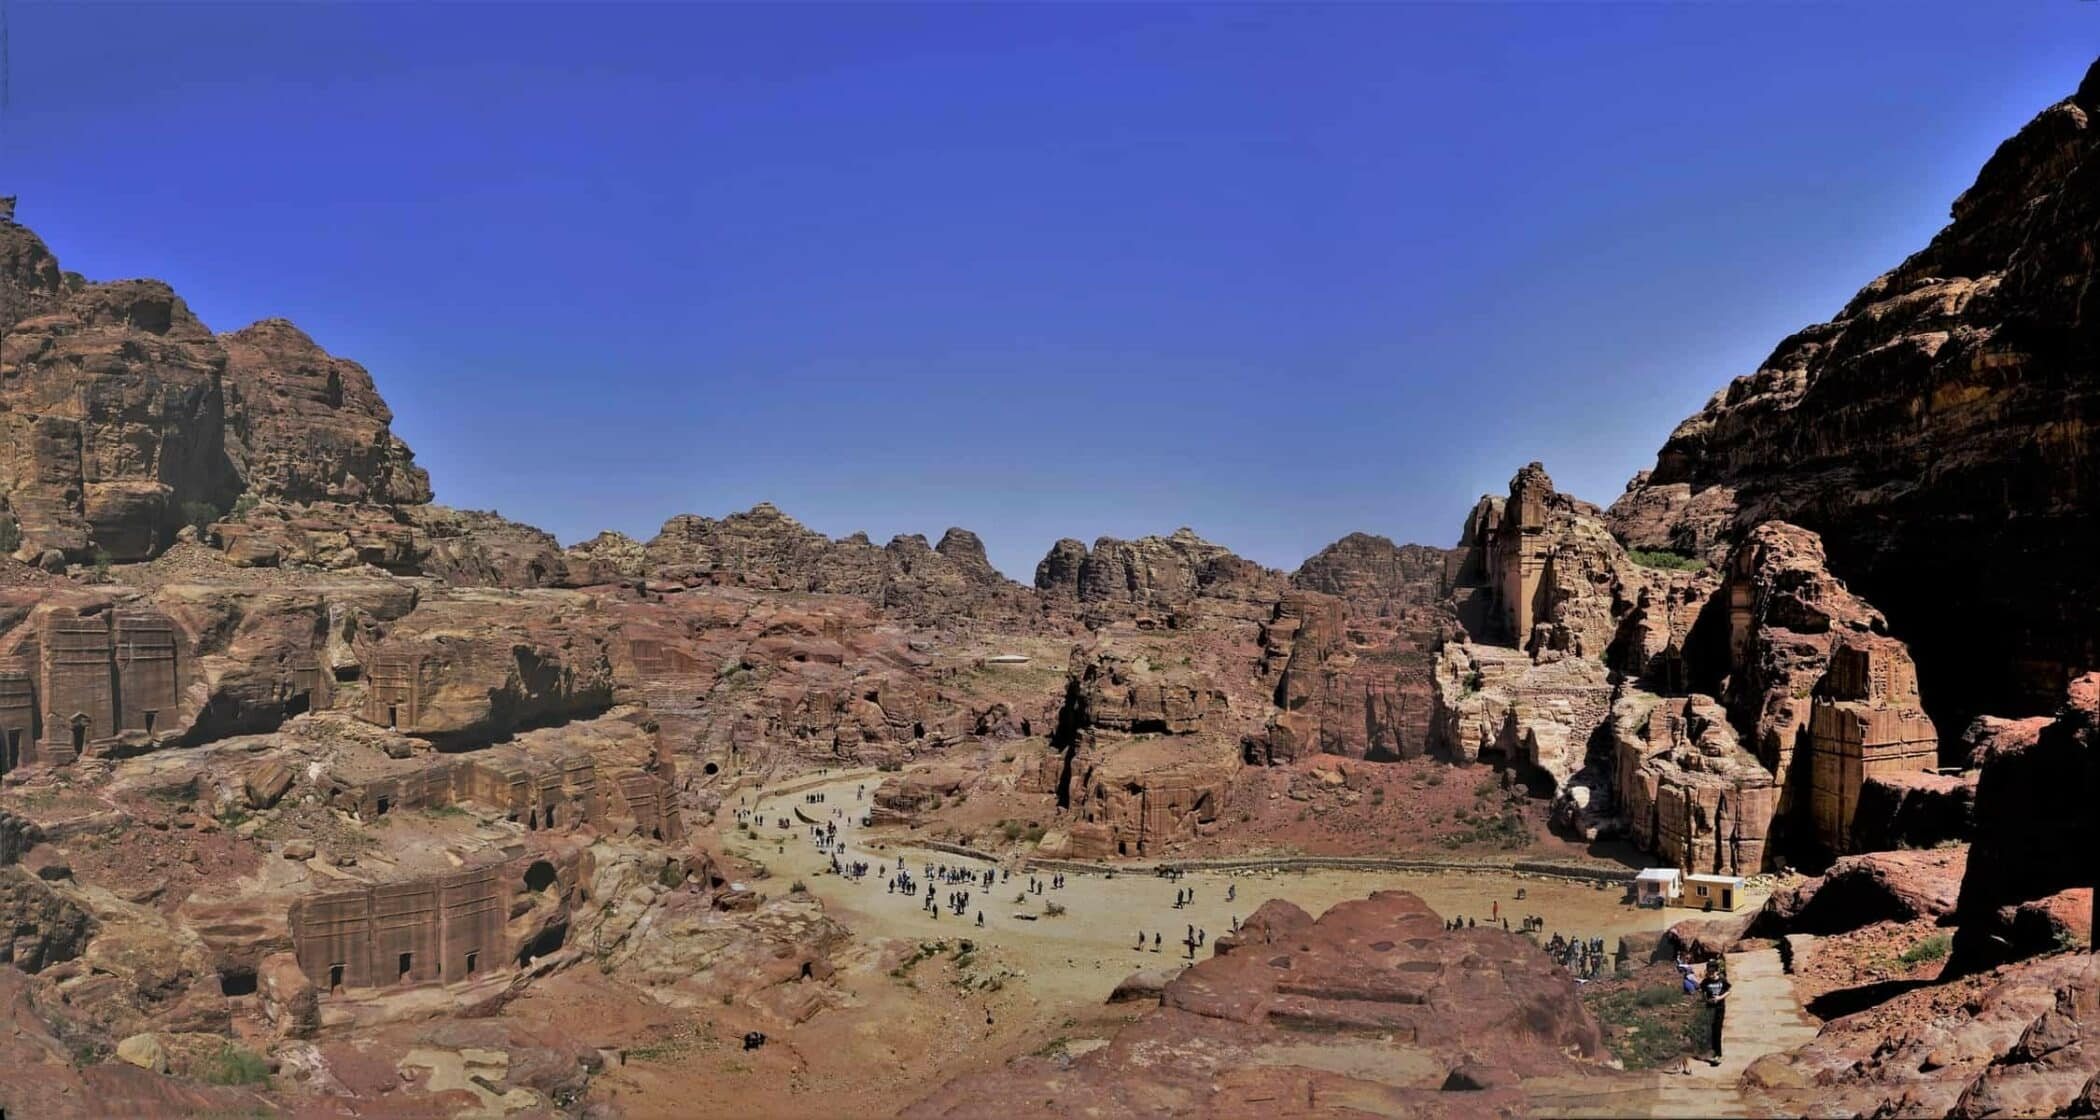 Panorama of ancient Petra, Jordan. This is the traditional route to the monasteries.